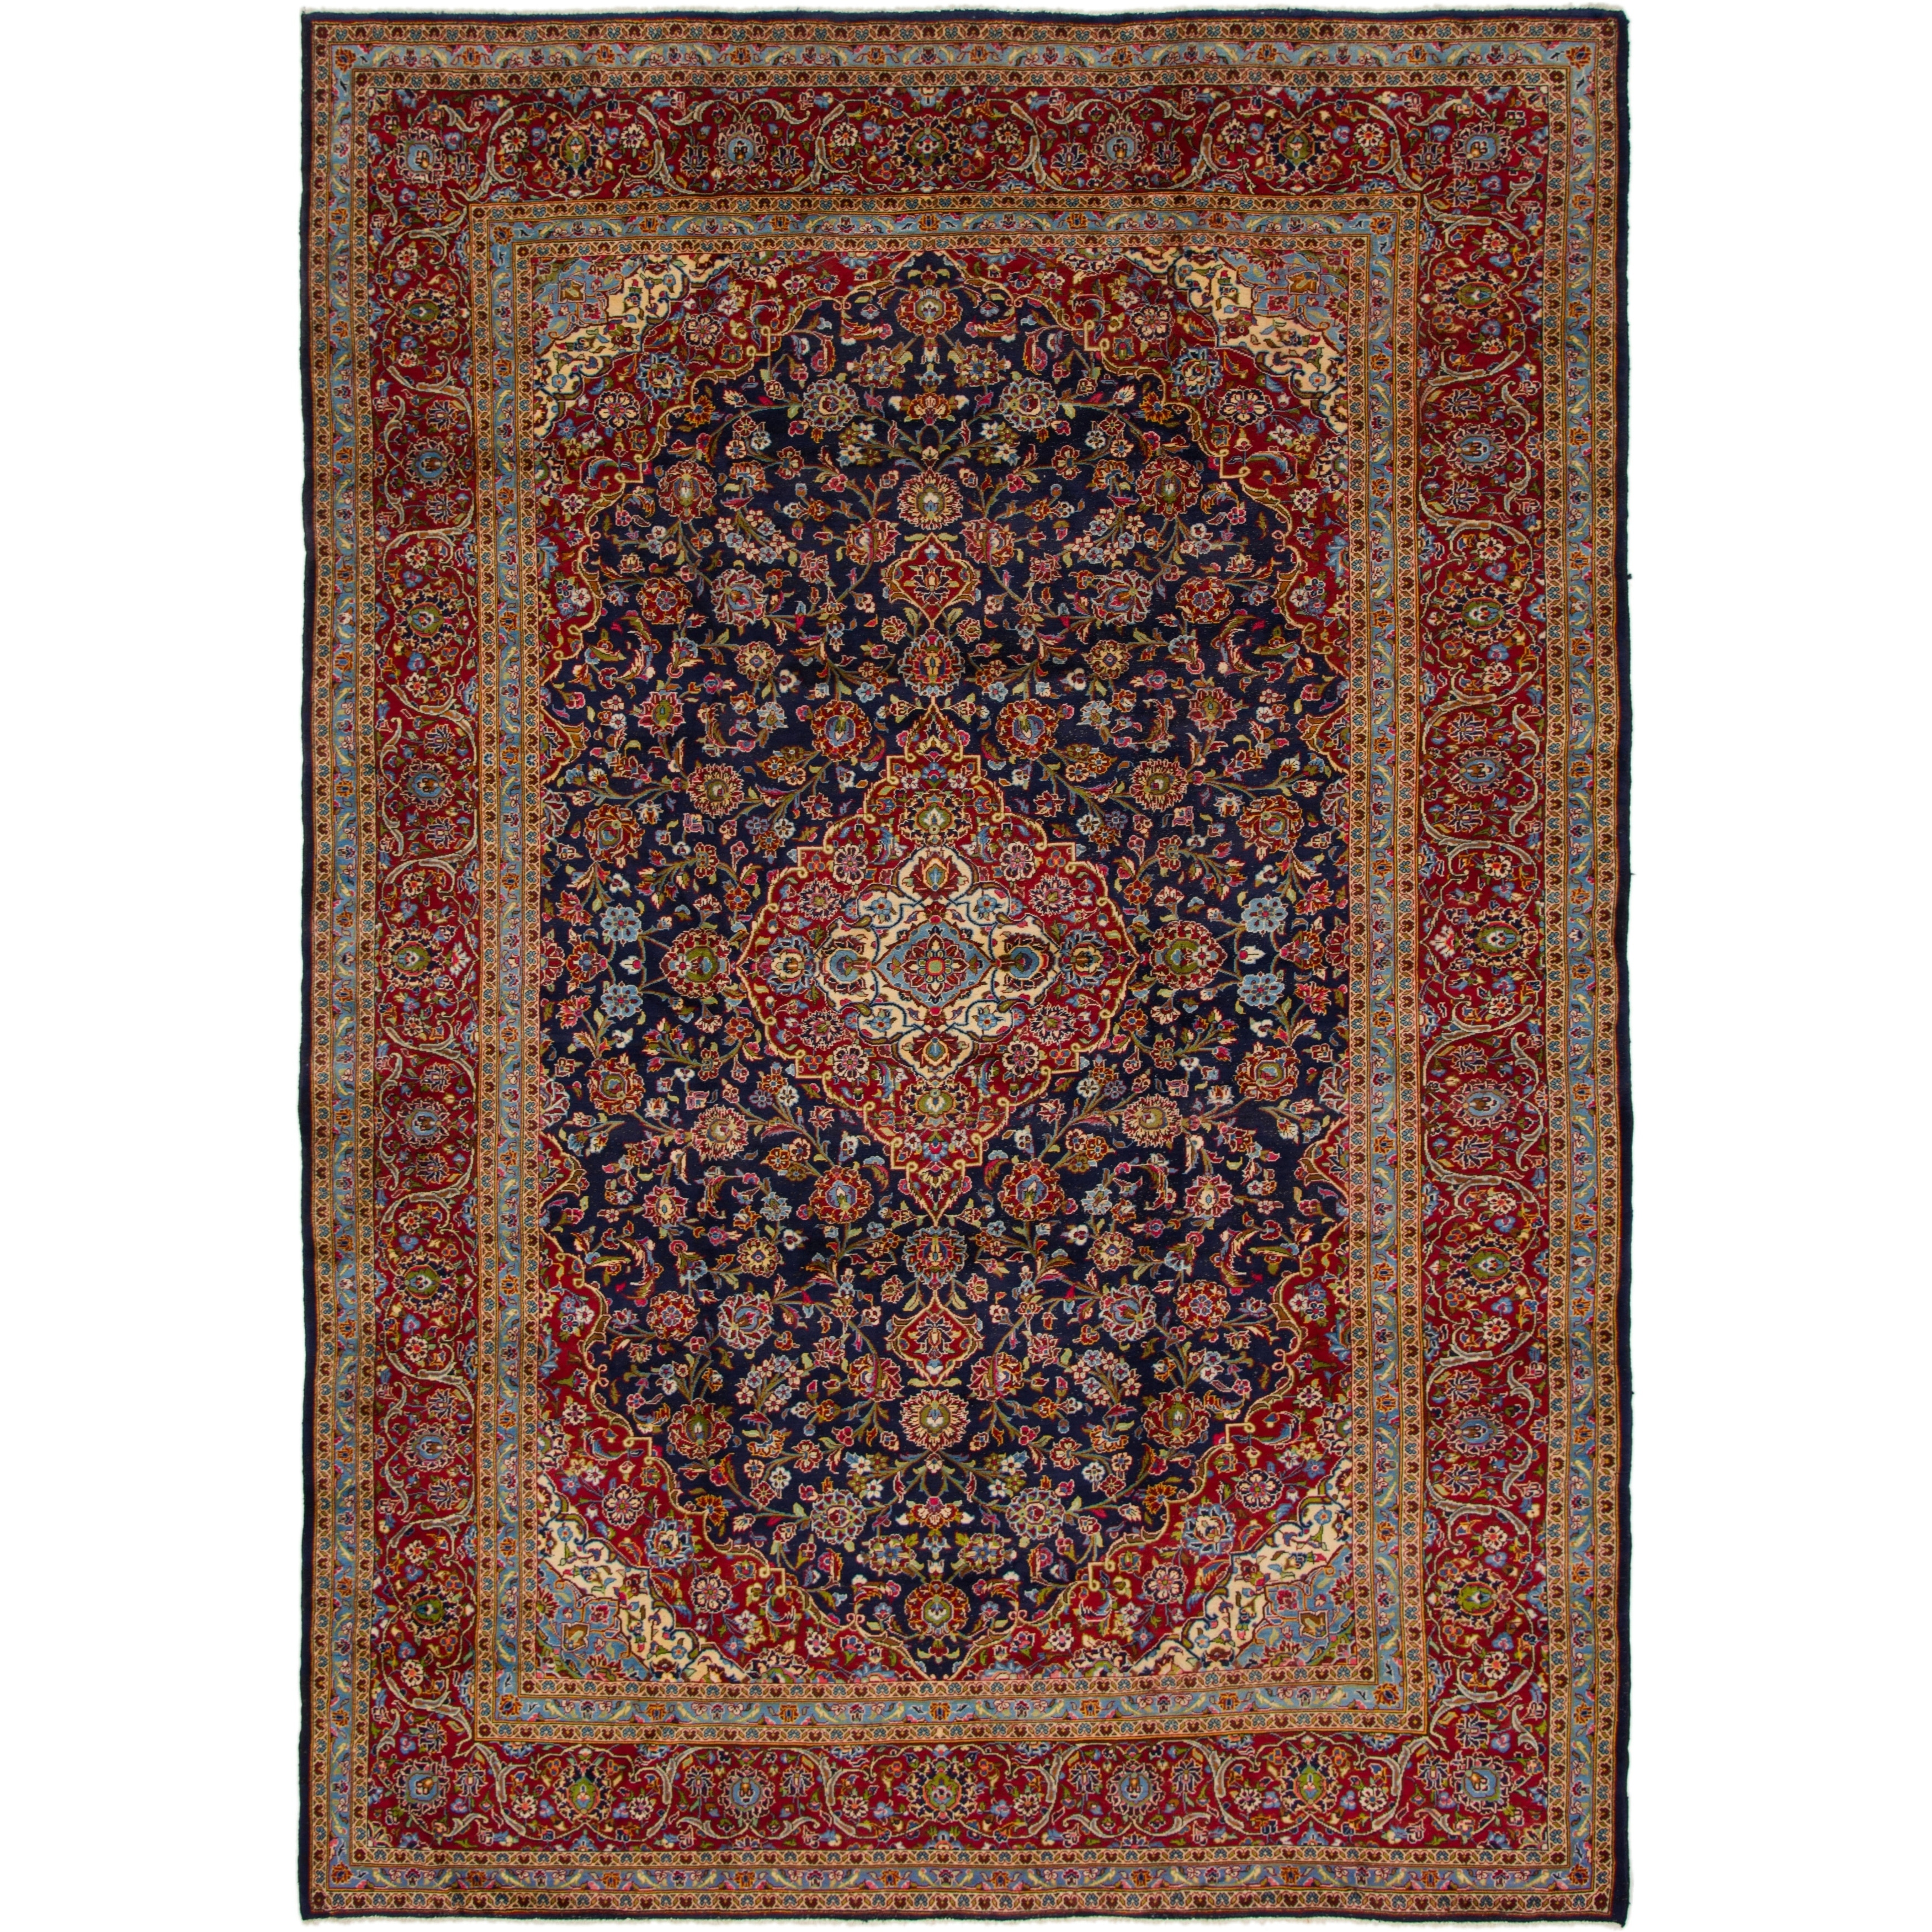 Hand Knotted Kashan Semi Antique Wool Area Rug - 9 6 x 13 6 (Navy blue - 9 6 x 13 6)